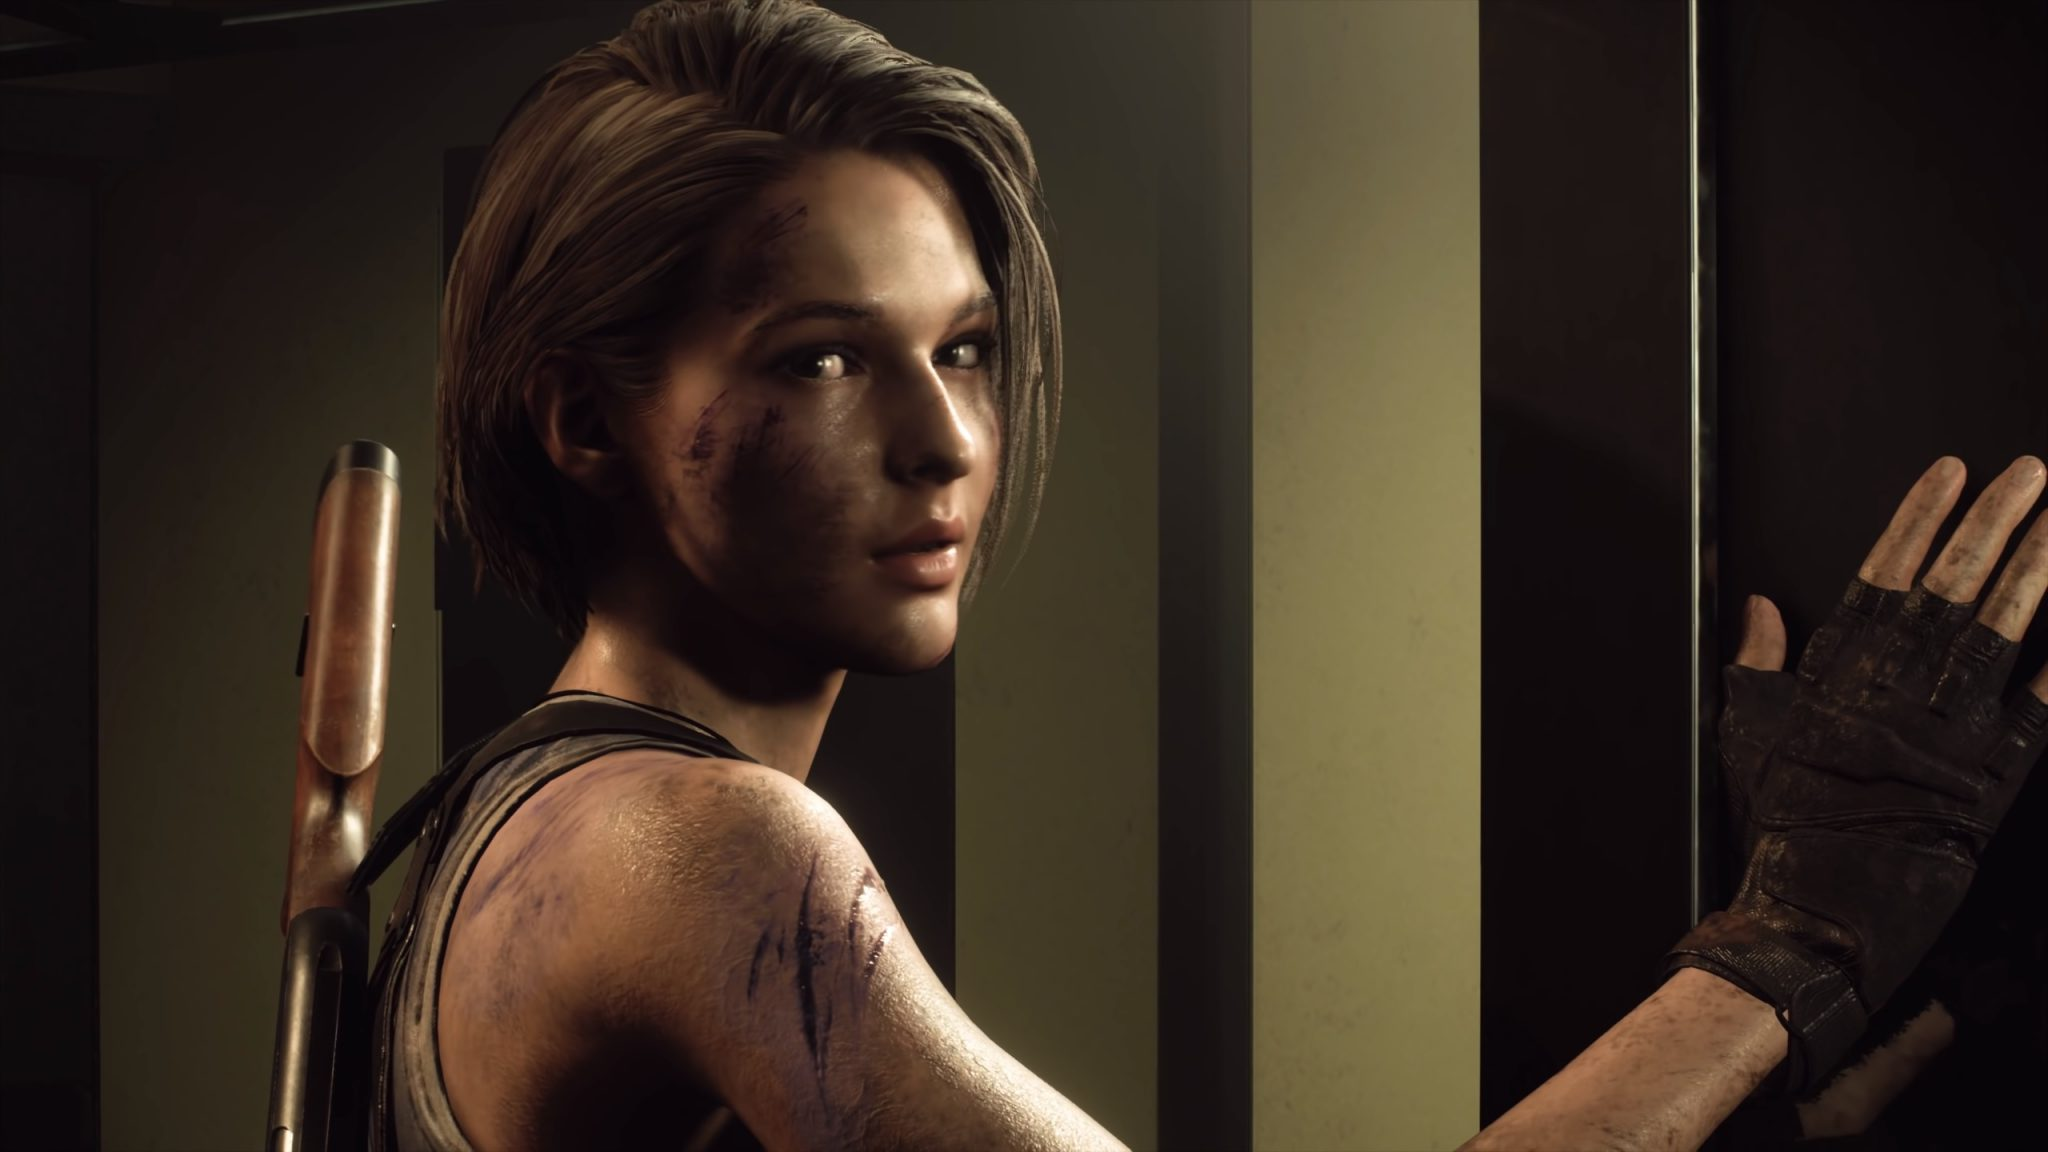 jill valentine re3 remake